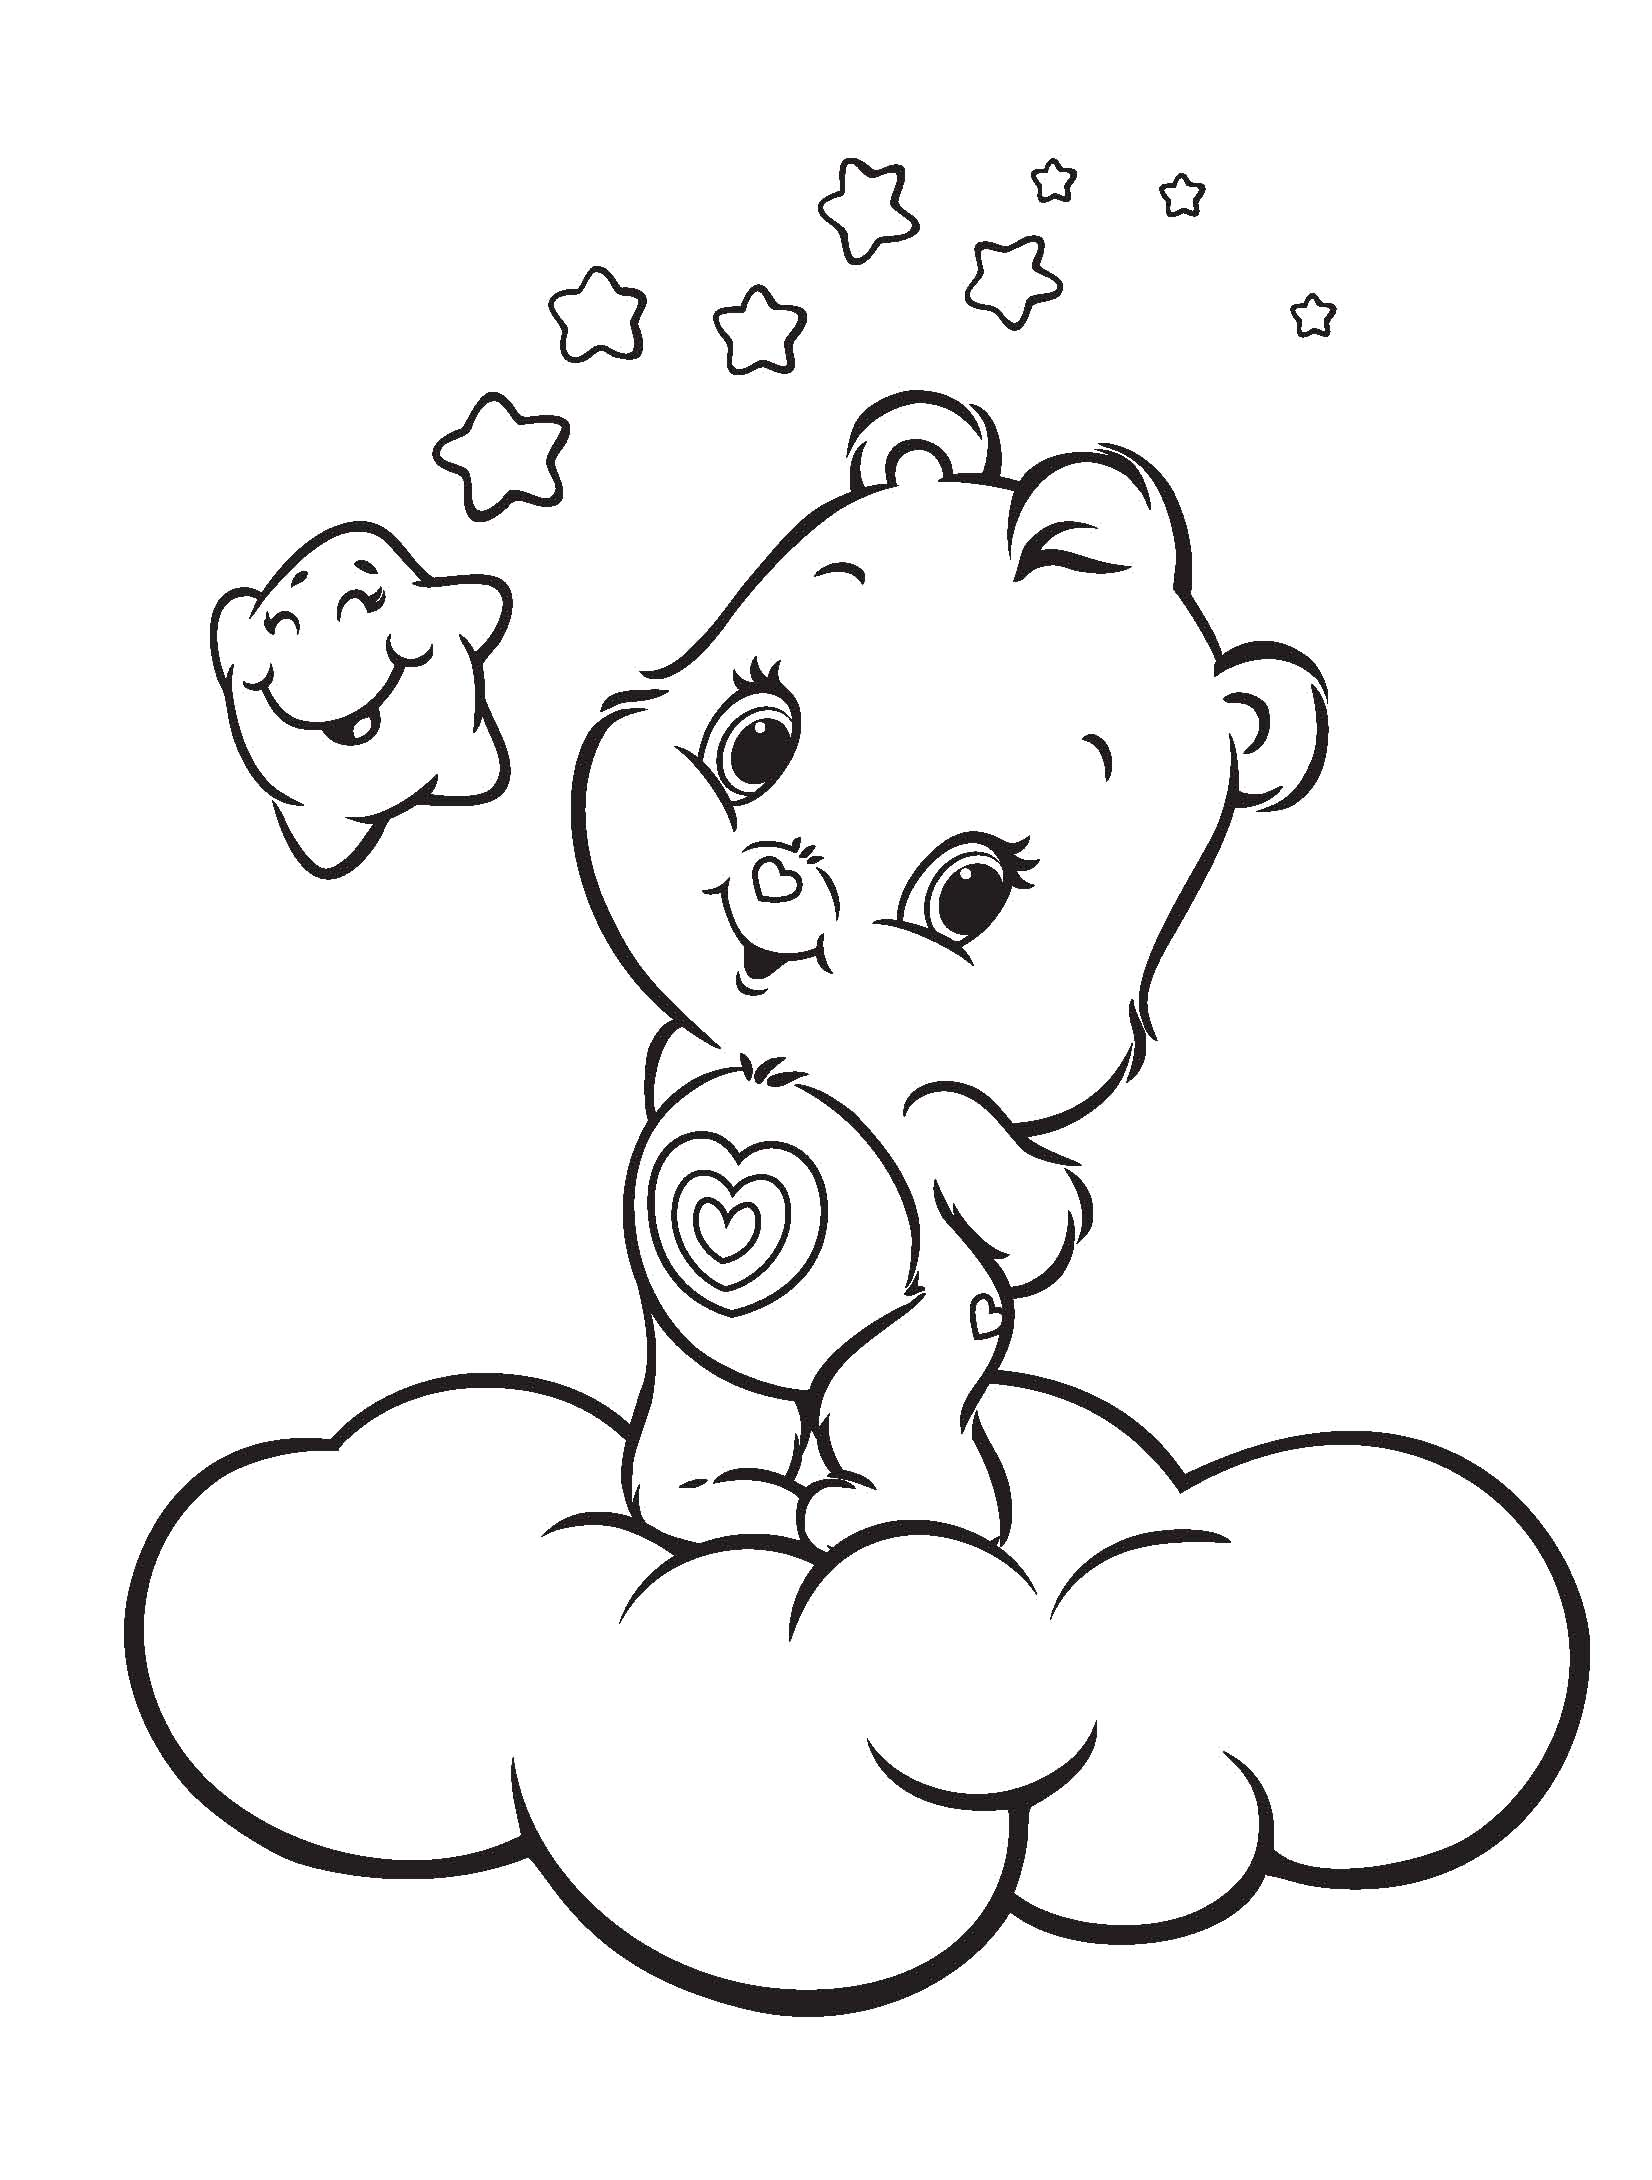 care bear coloring pages christmas - photo#27